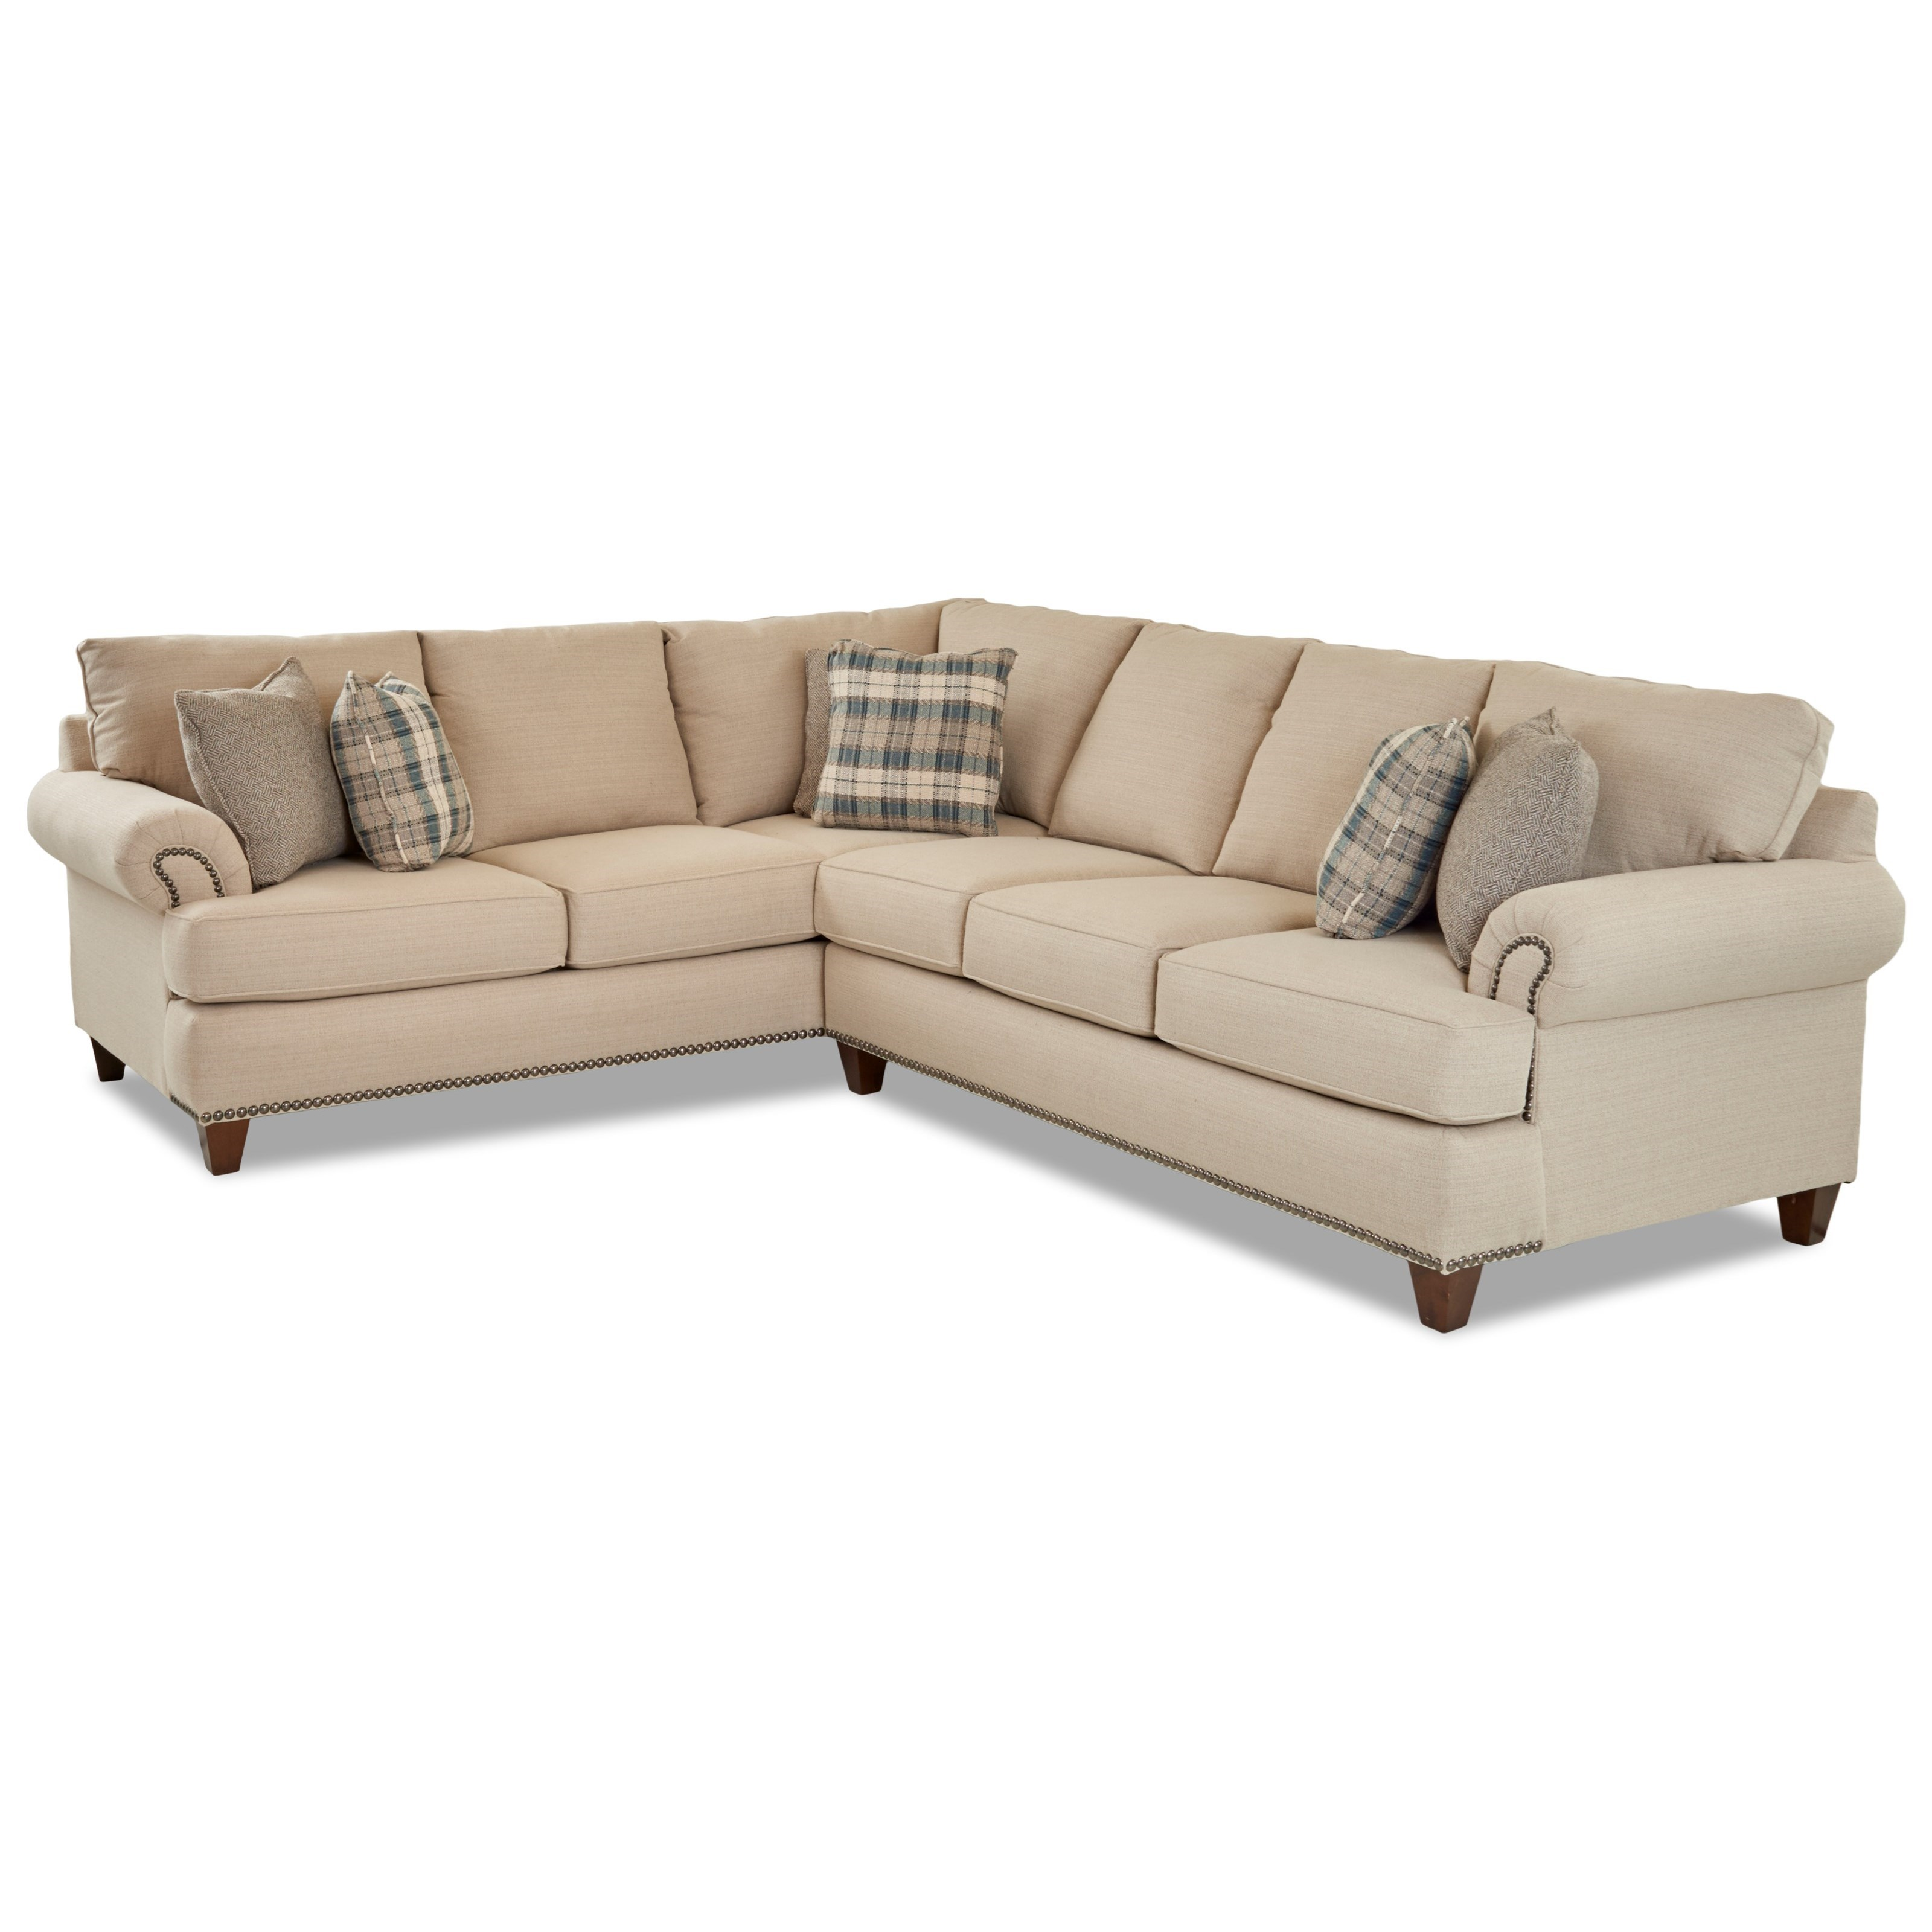 2 Pc Sectional Sofa w/ RAF Sofa